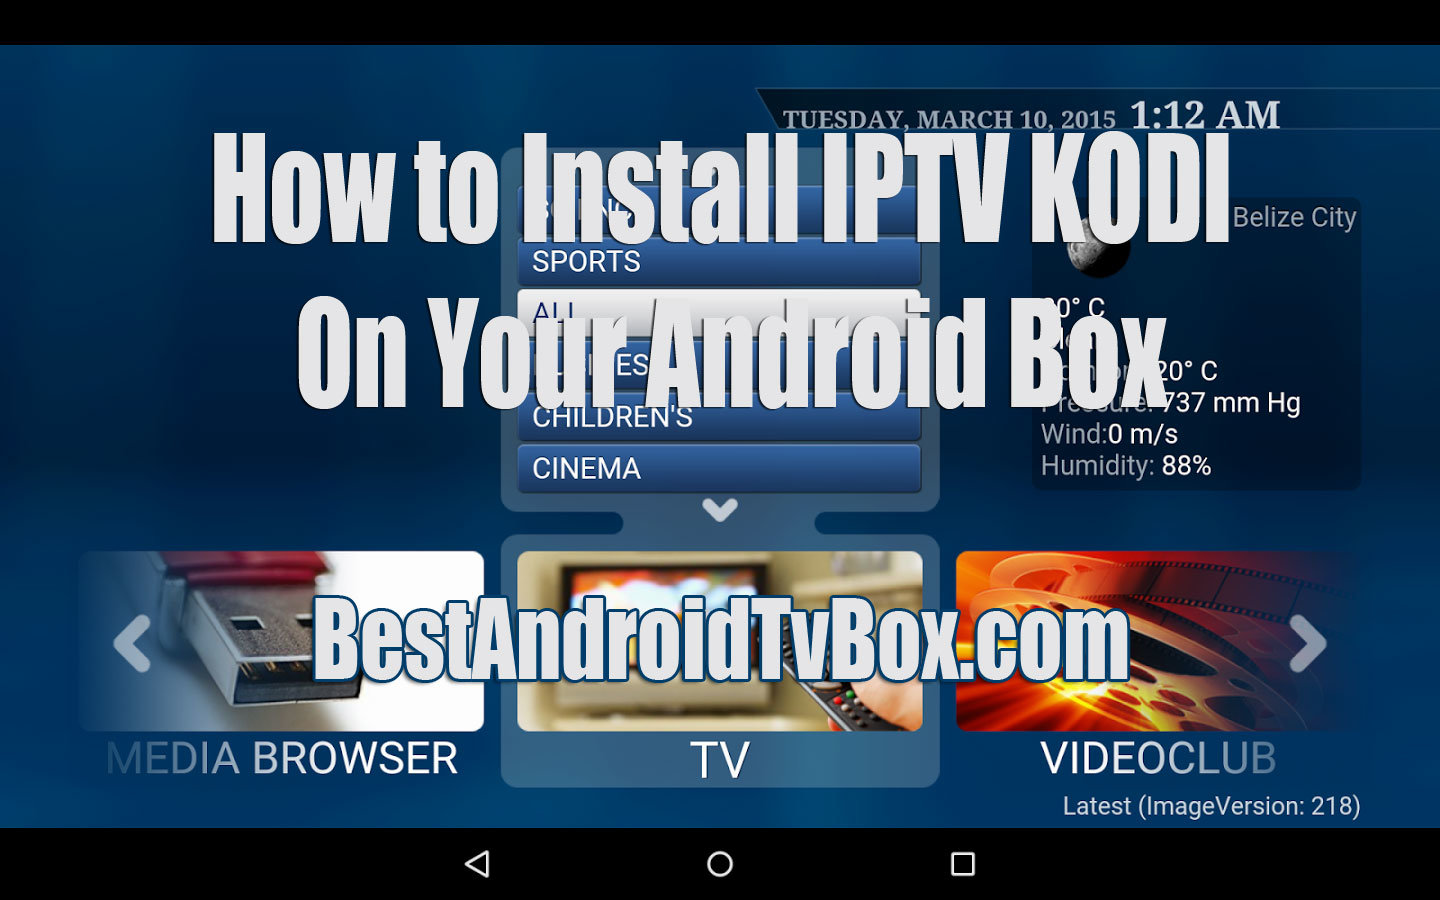 How to Install Iptv Kodi - BestBox